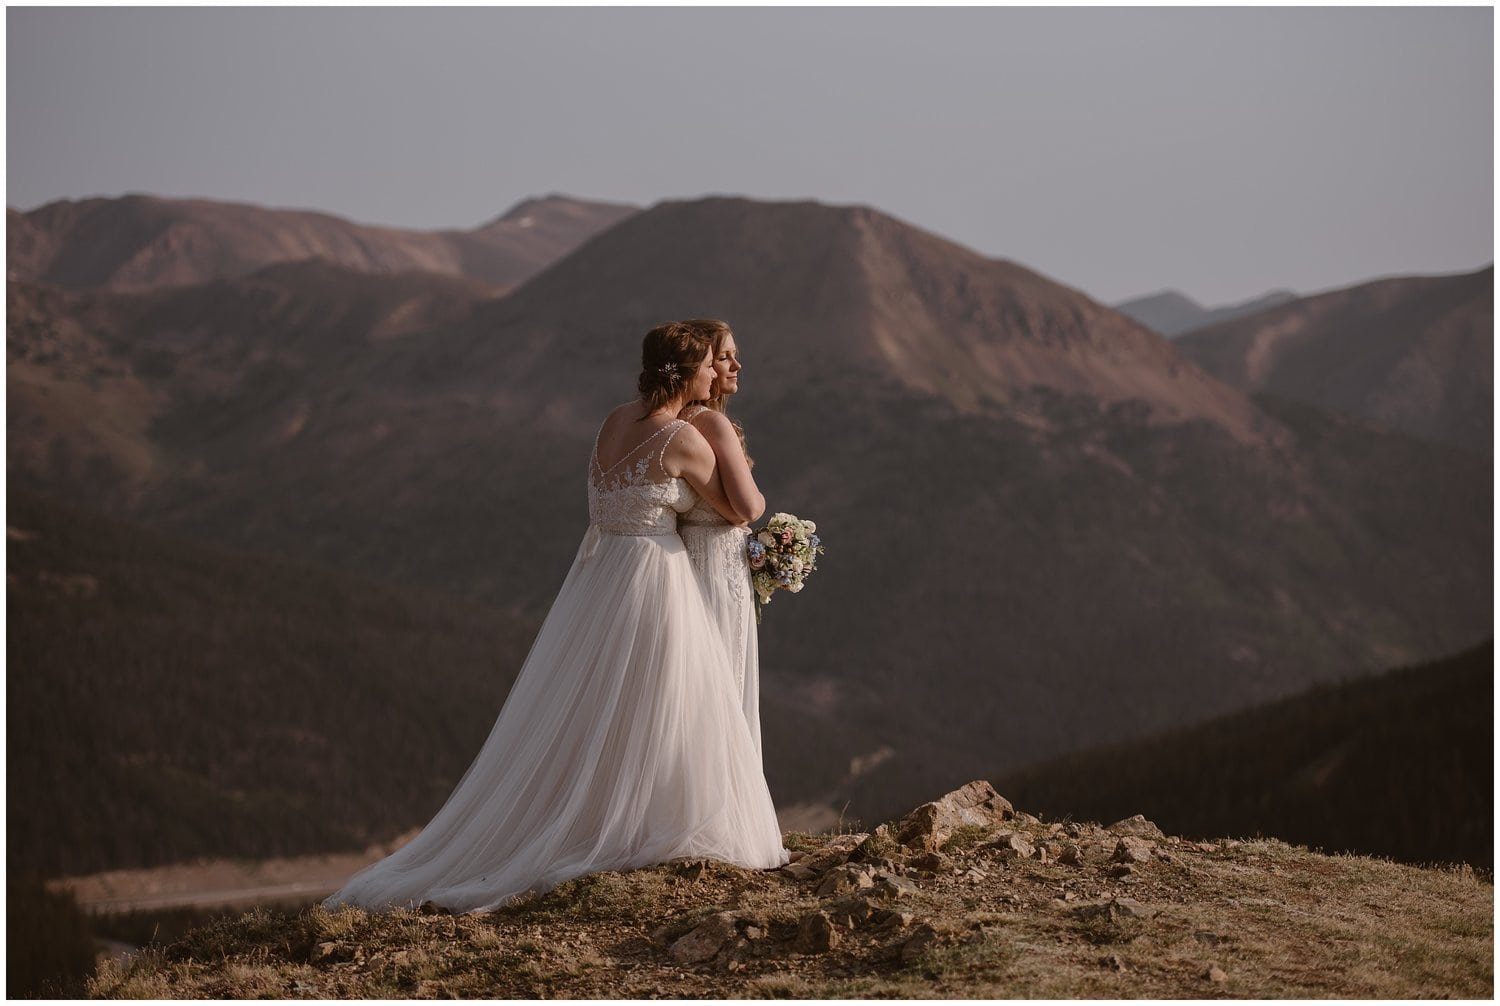 A couple embrace in the mountains on their wedding day.